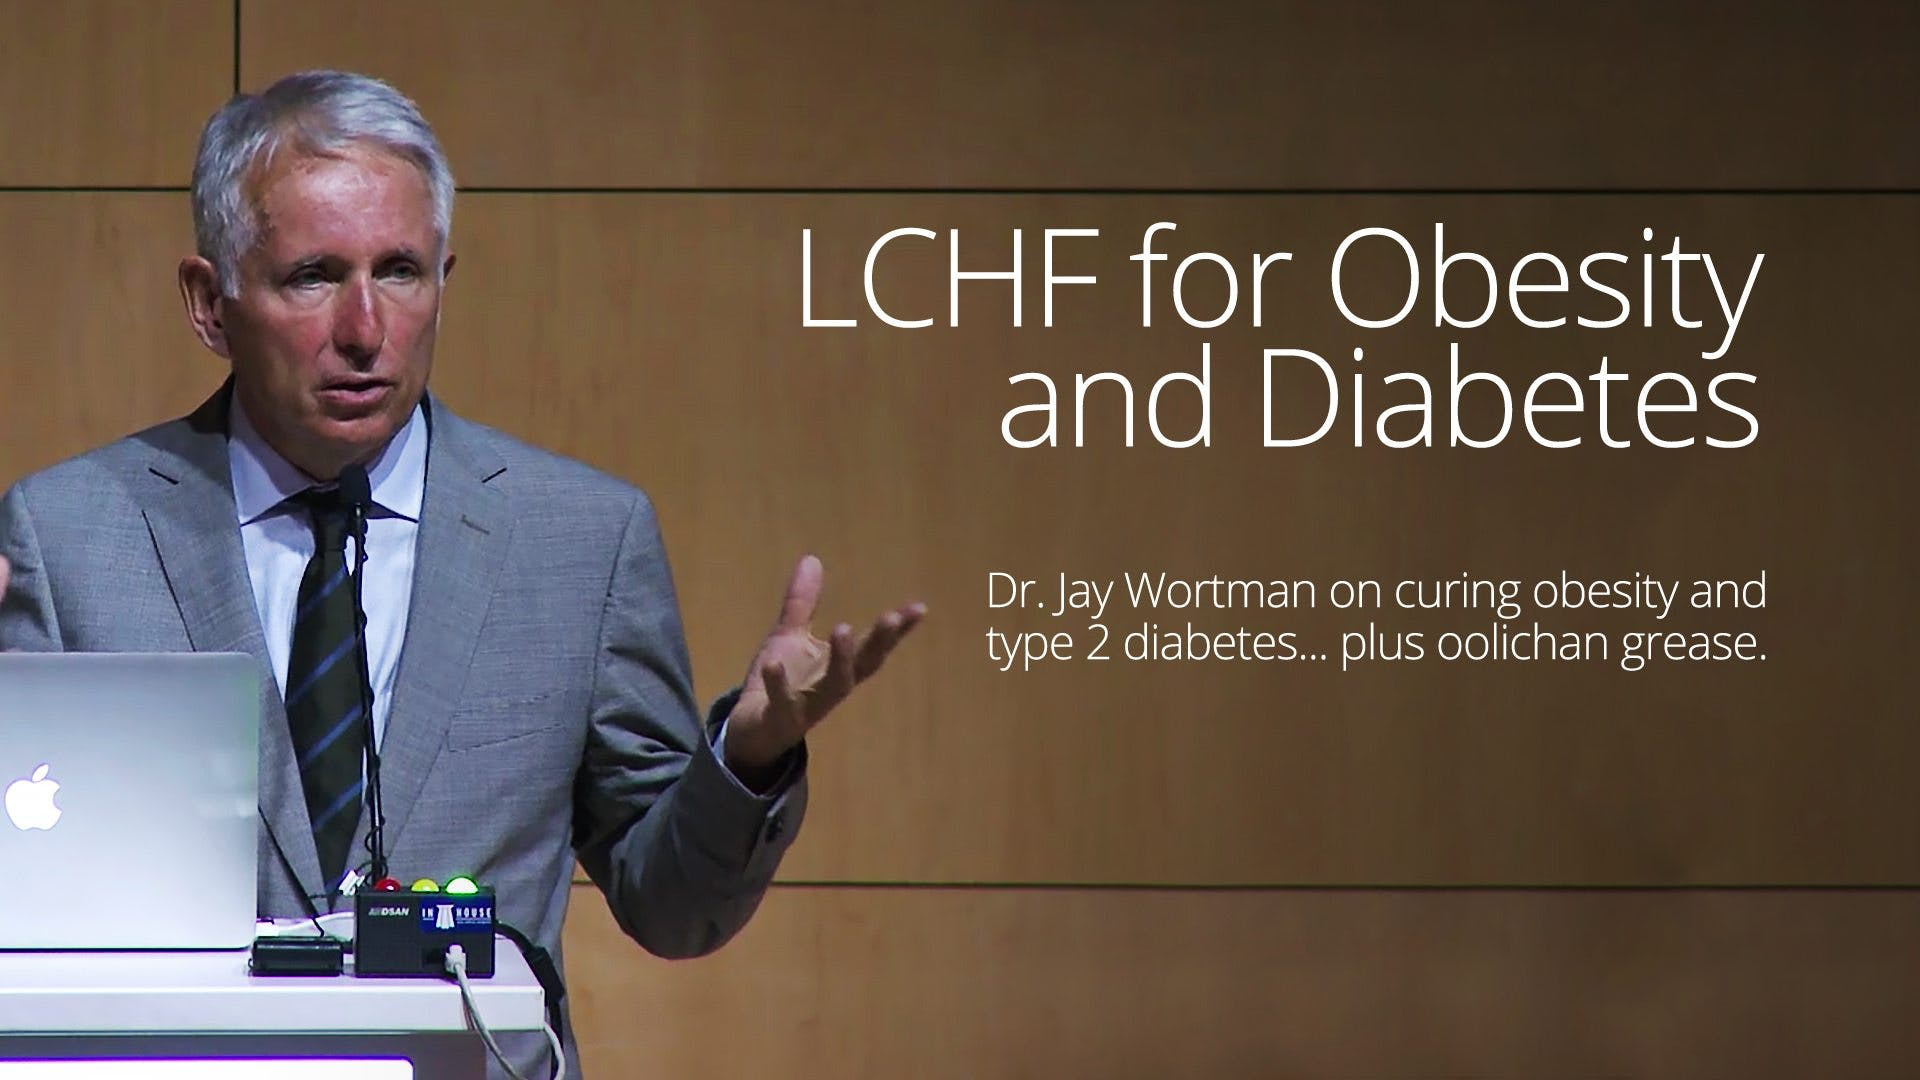 LCHF for obesity and diabetes